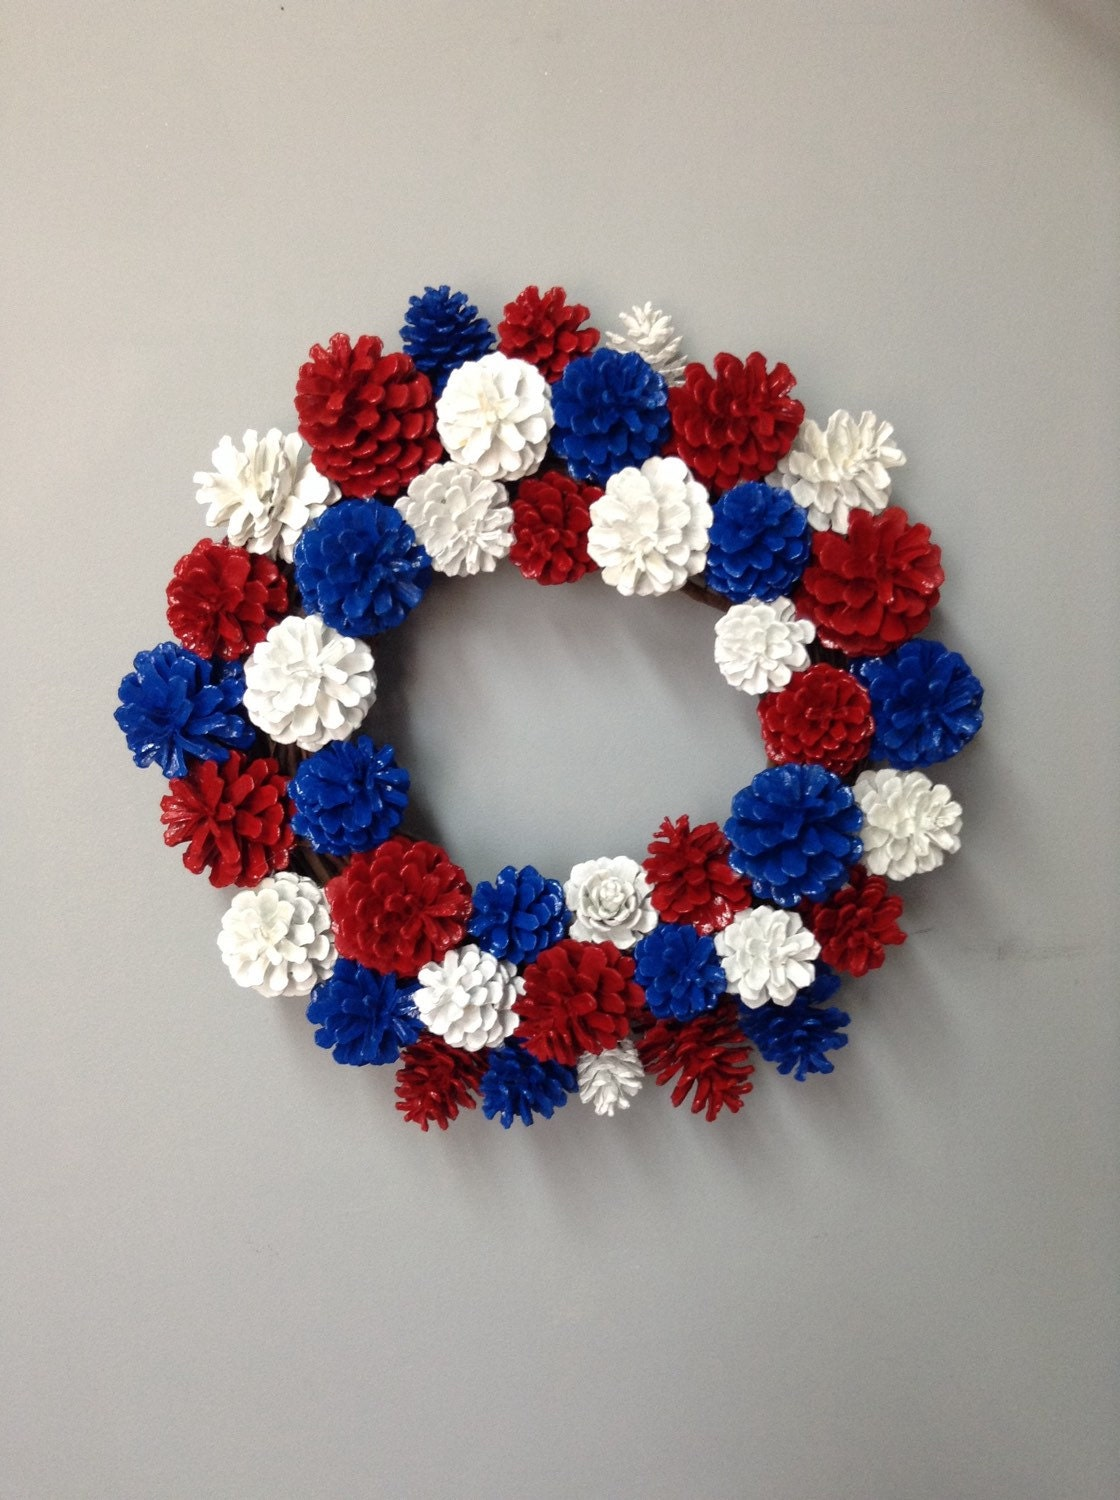 Patriotic Pinecone Wreath Patriotic Decor Pinecone Decor